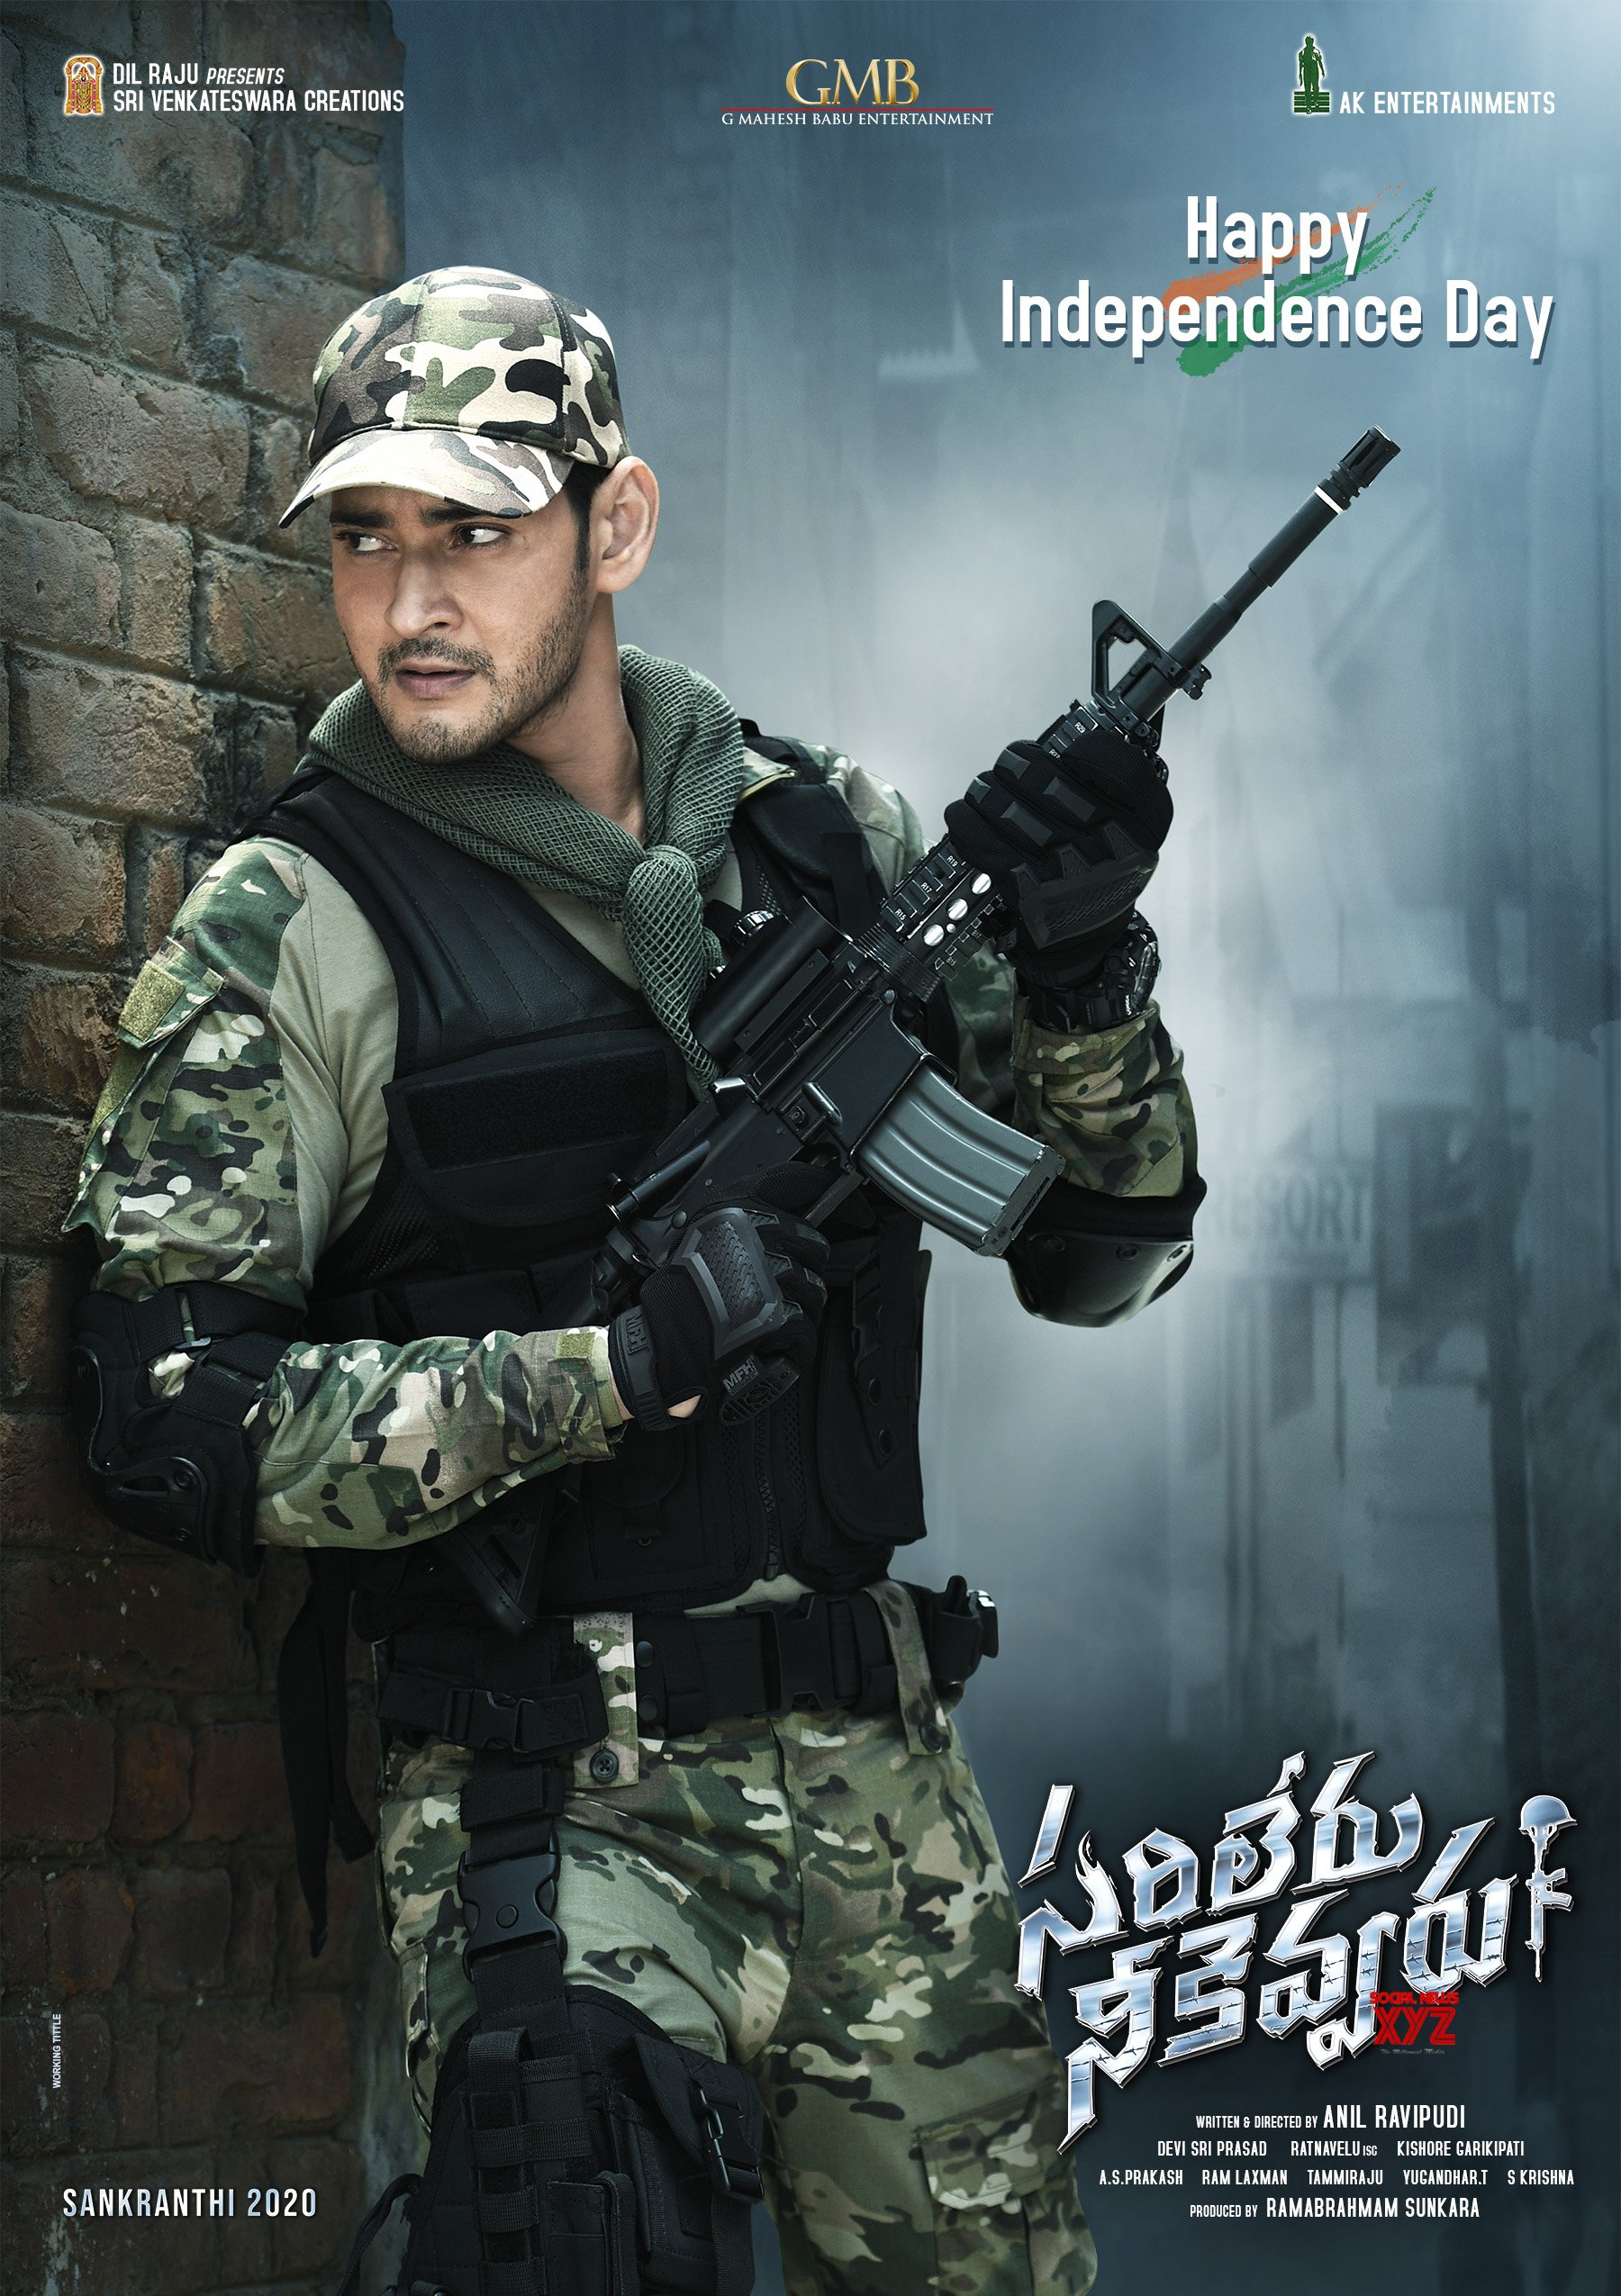 Team Sarileru Neekevvaru Salutes The Indian Army With A Tribute Video This Independence Day